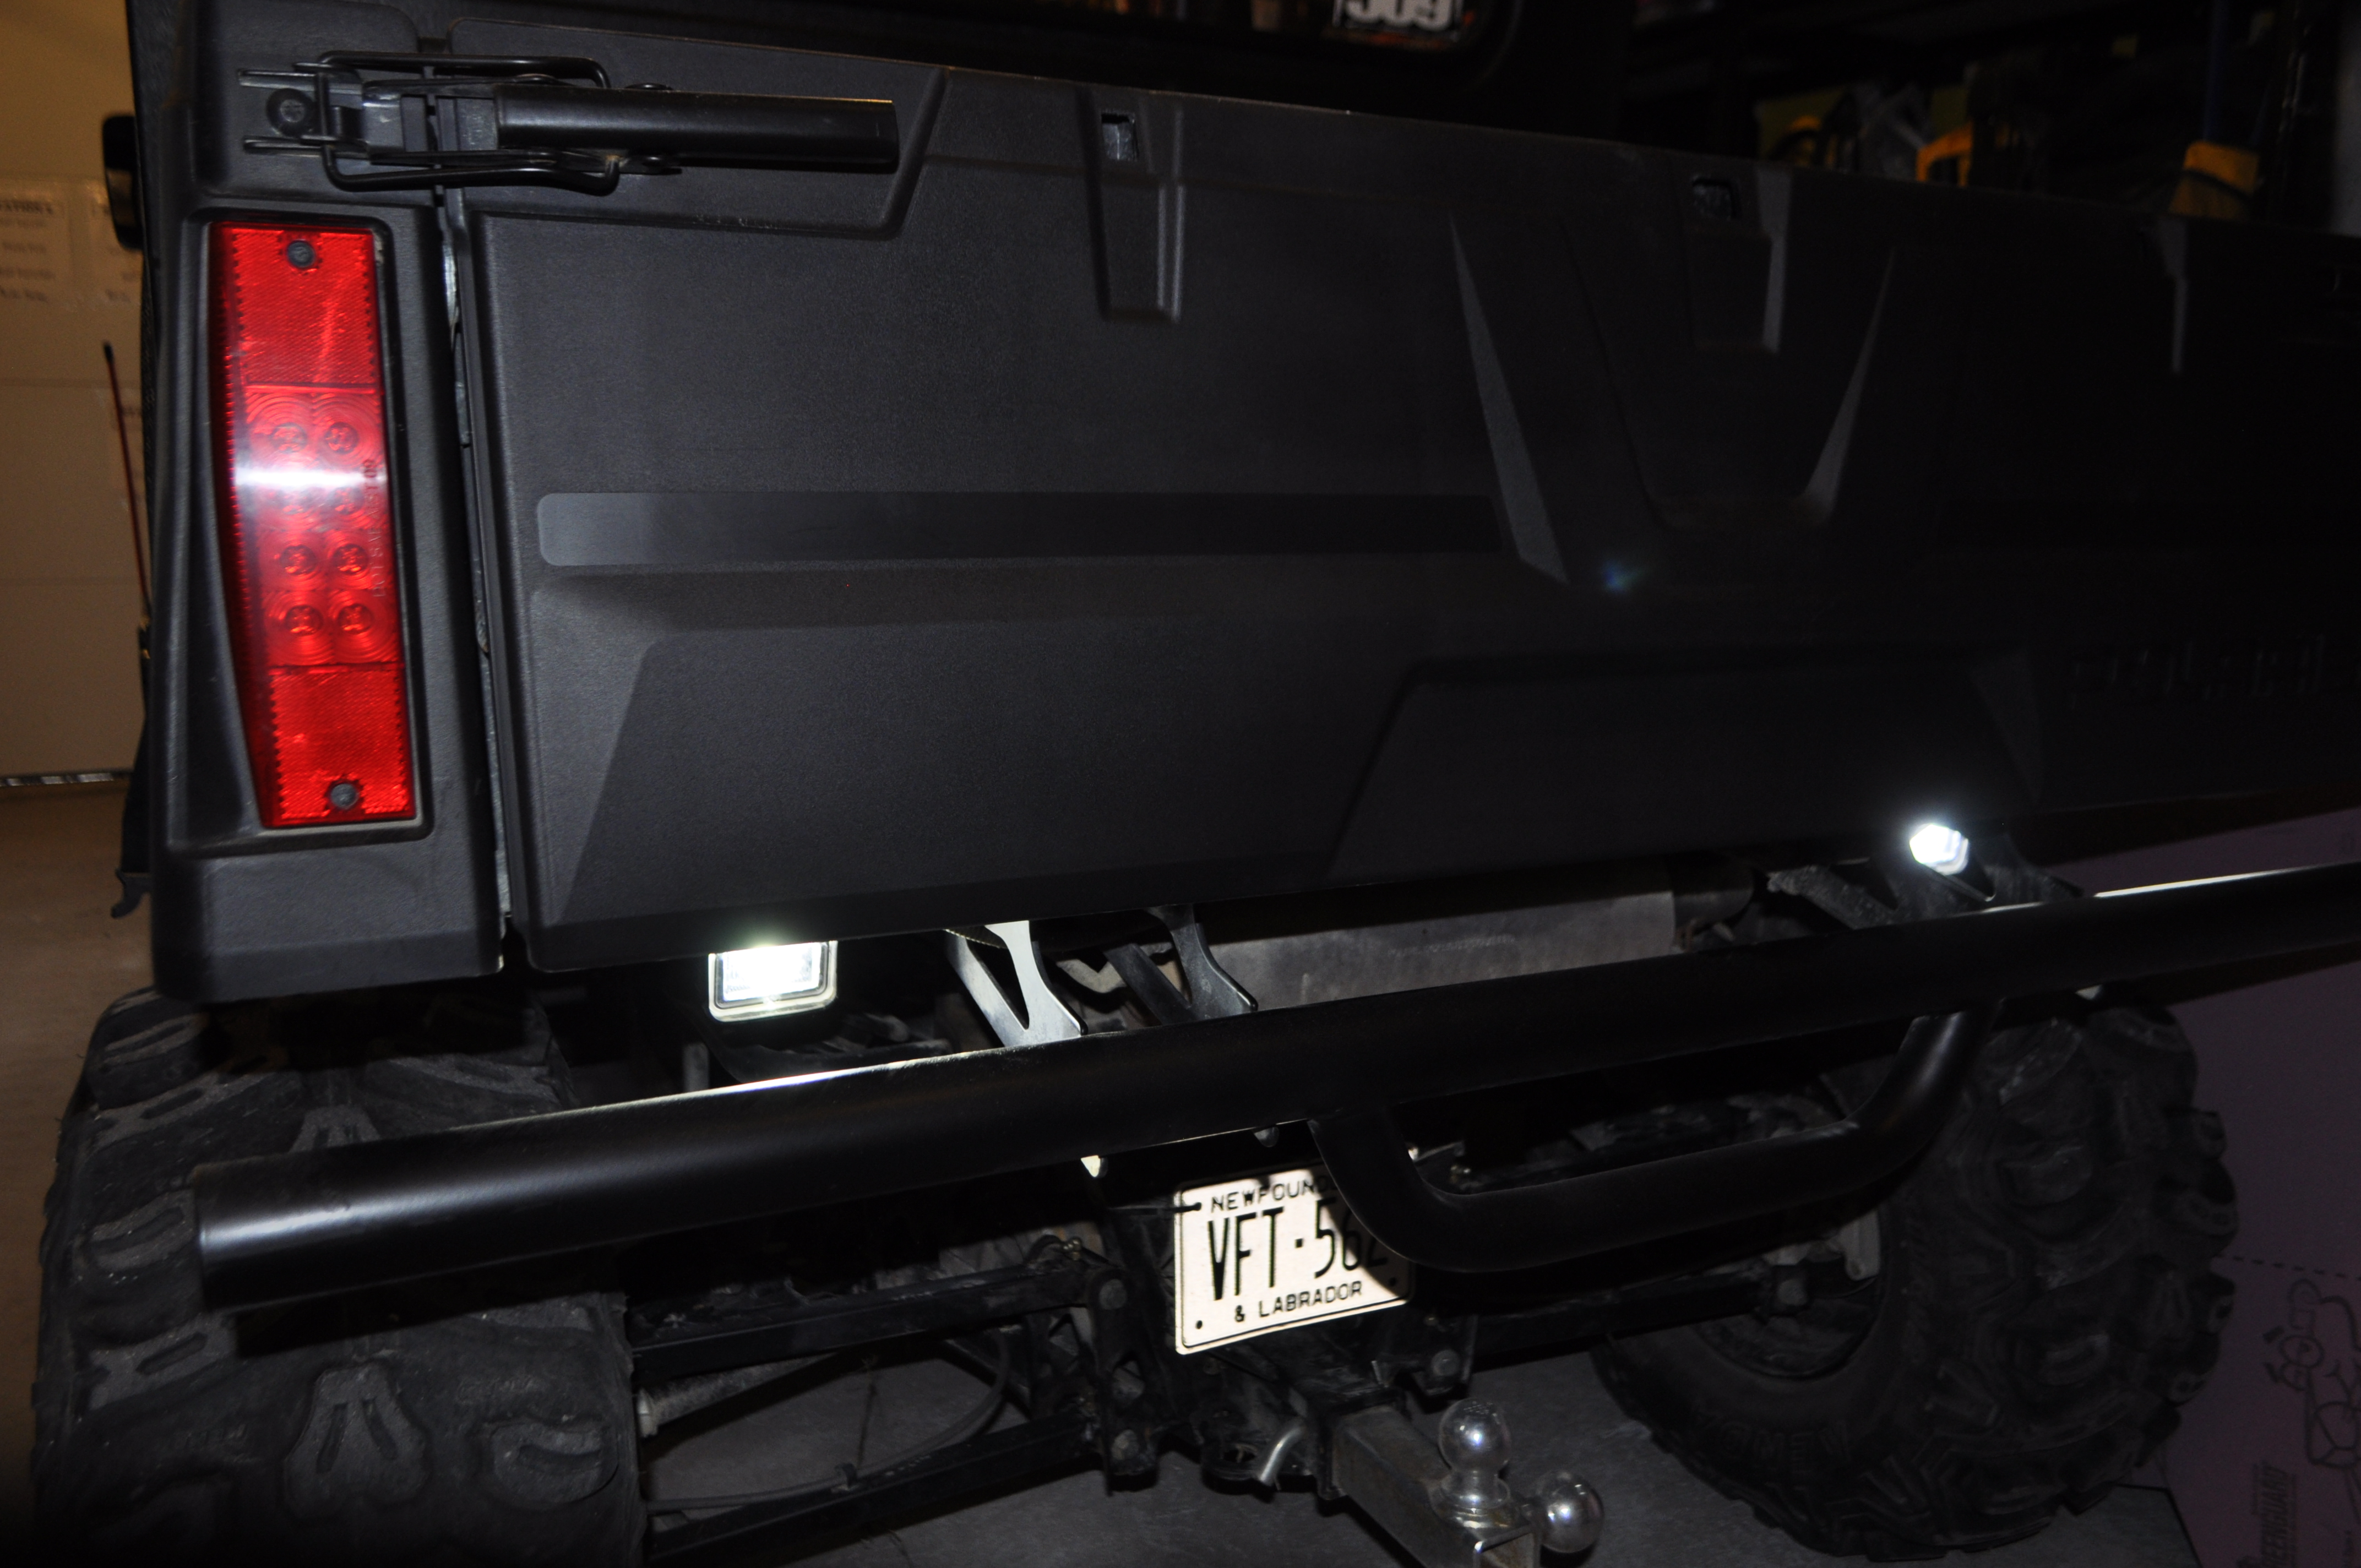 Rear facing led light bar page 2 easily replaceable name dsc9655g views 3201 size 373 mb aloadofball Images